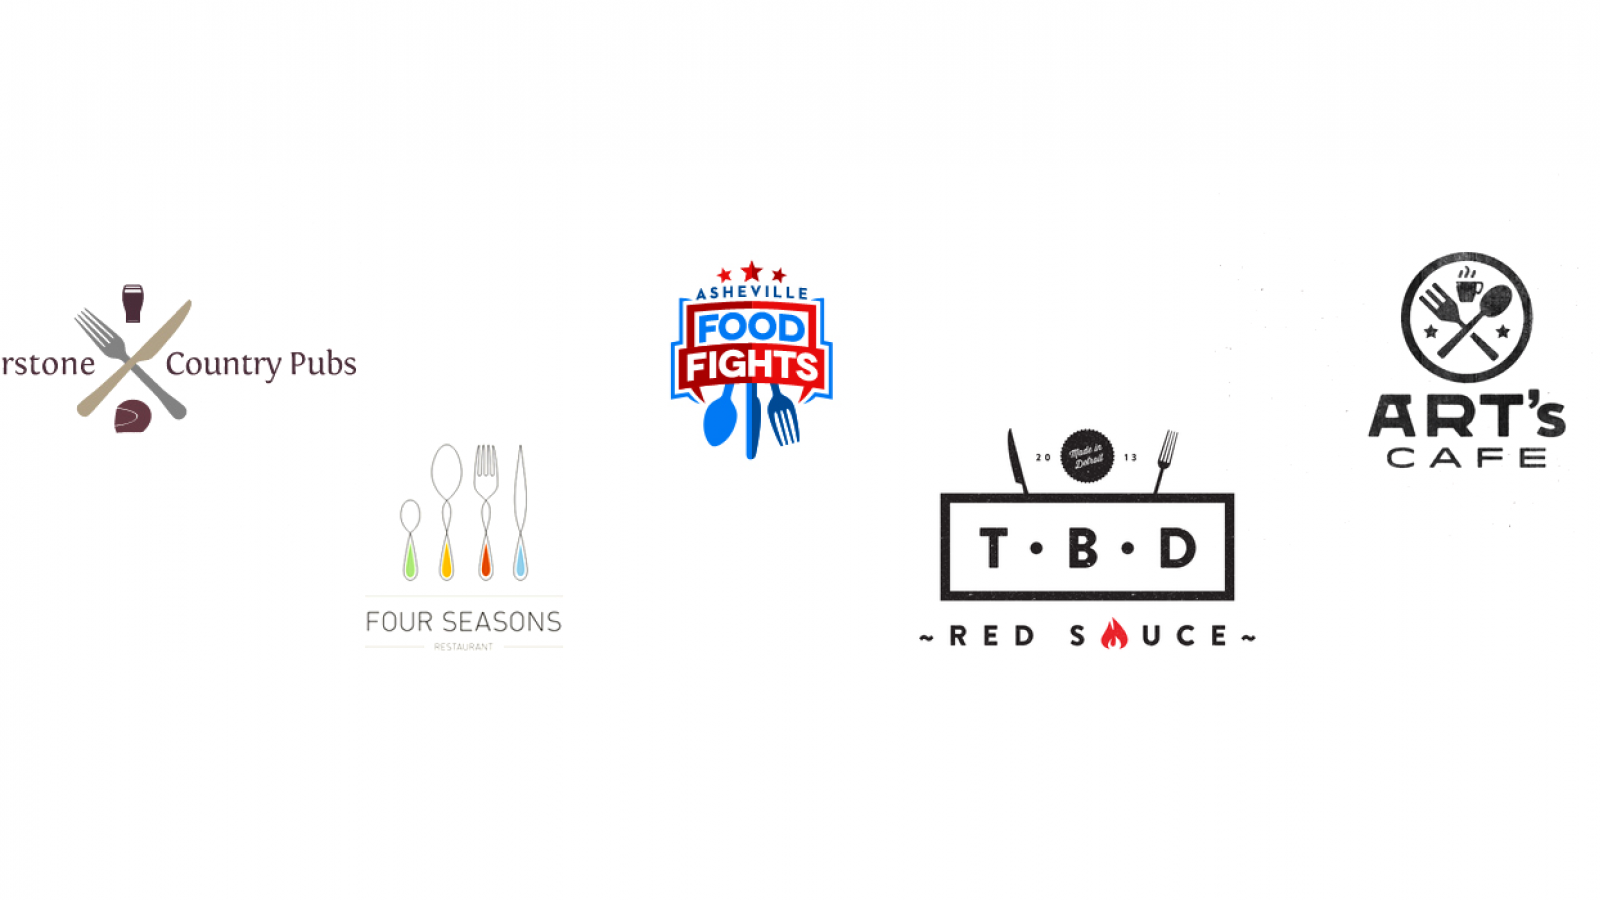 Logo Design: More Cutlery